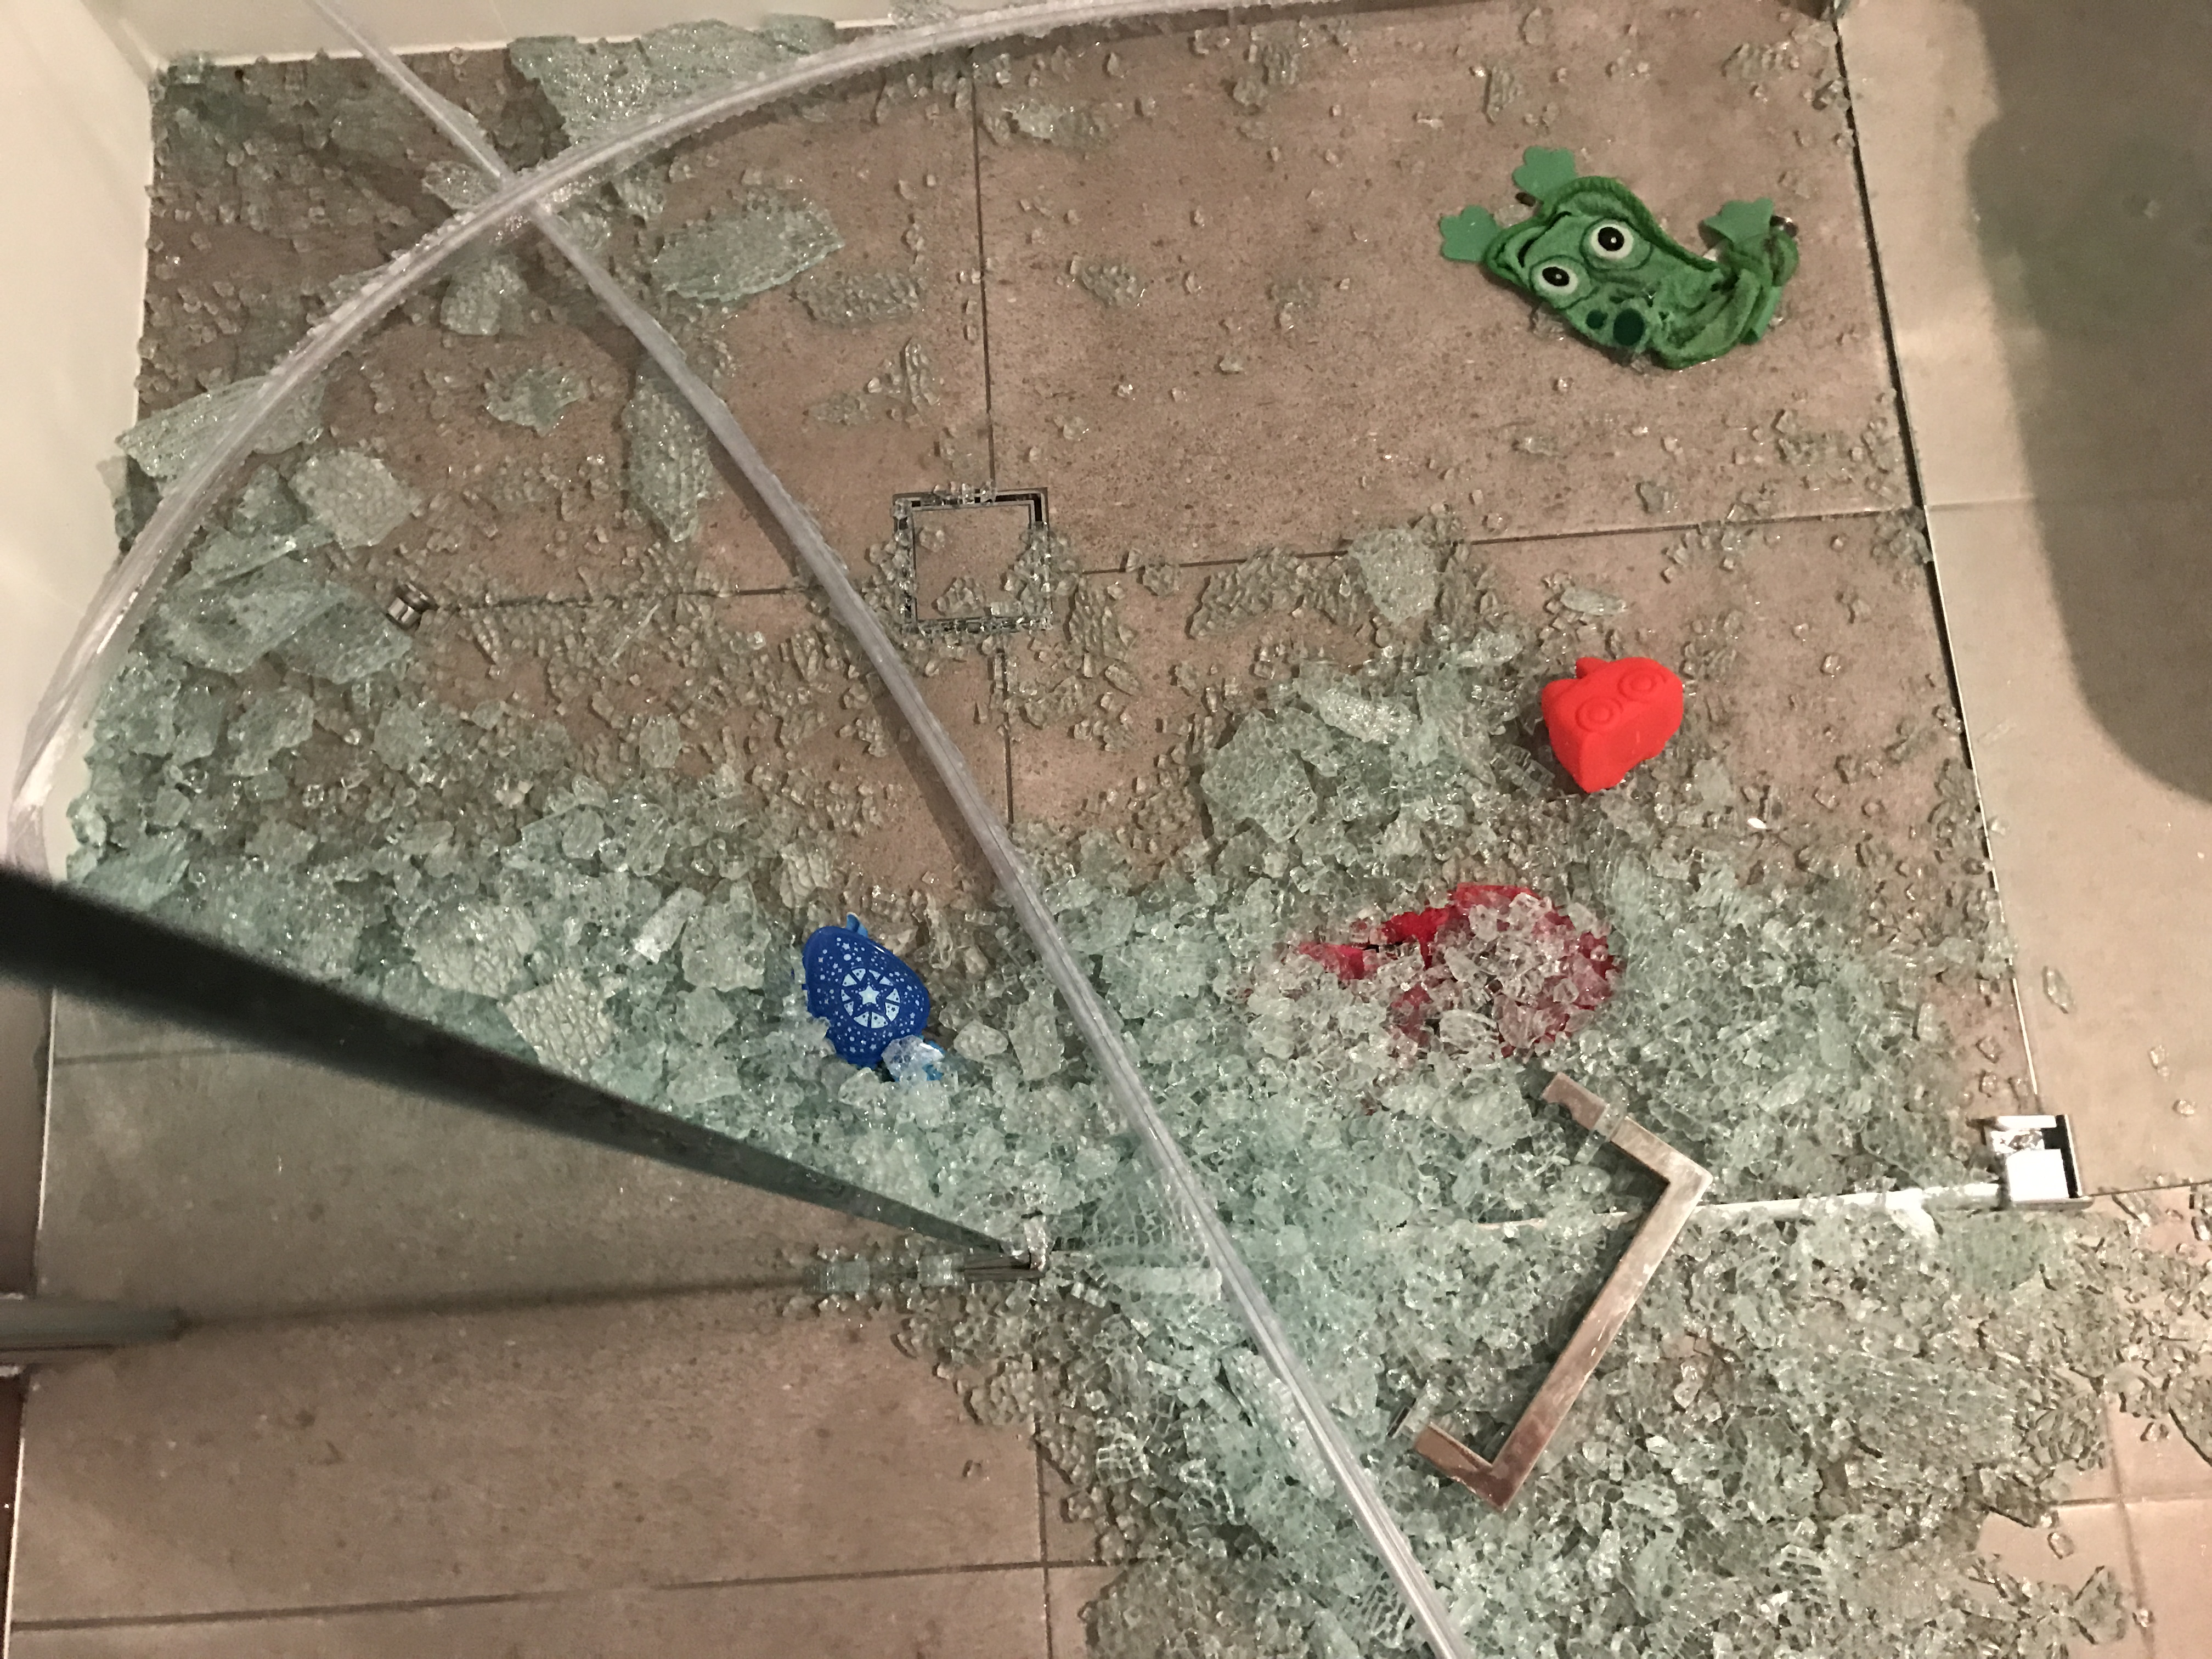 The shards of glass. (Supplied)